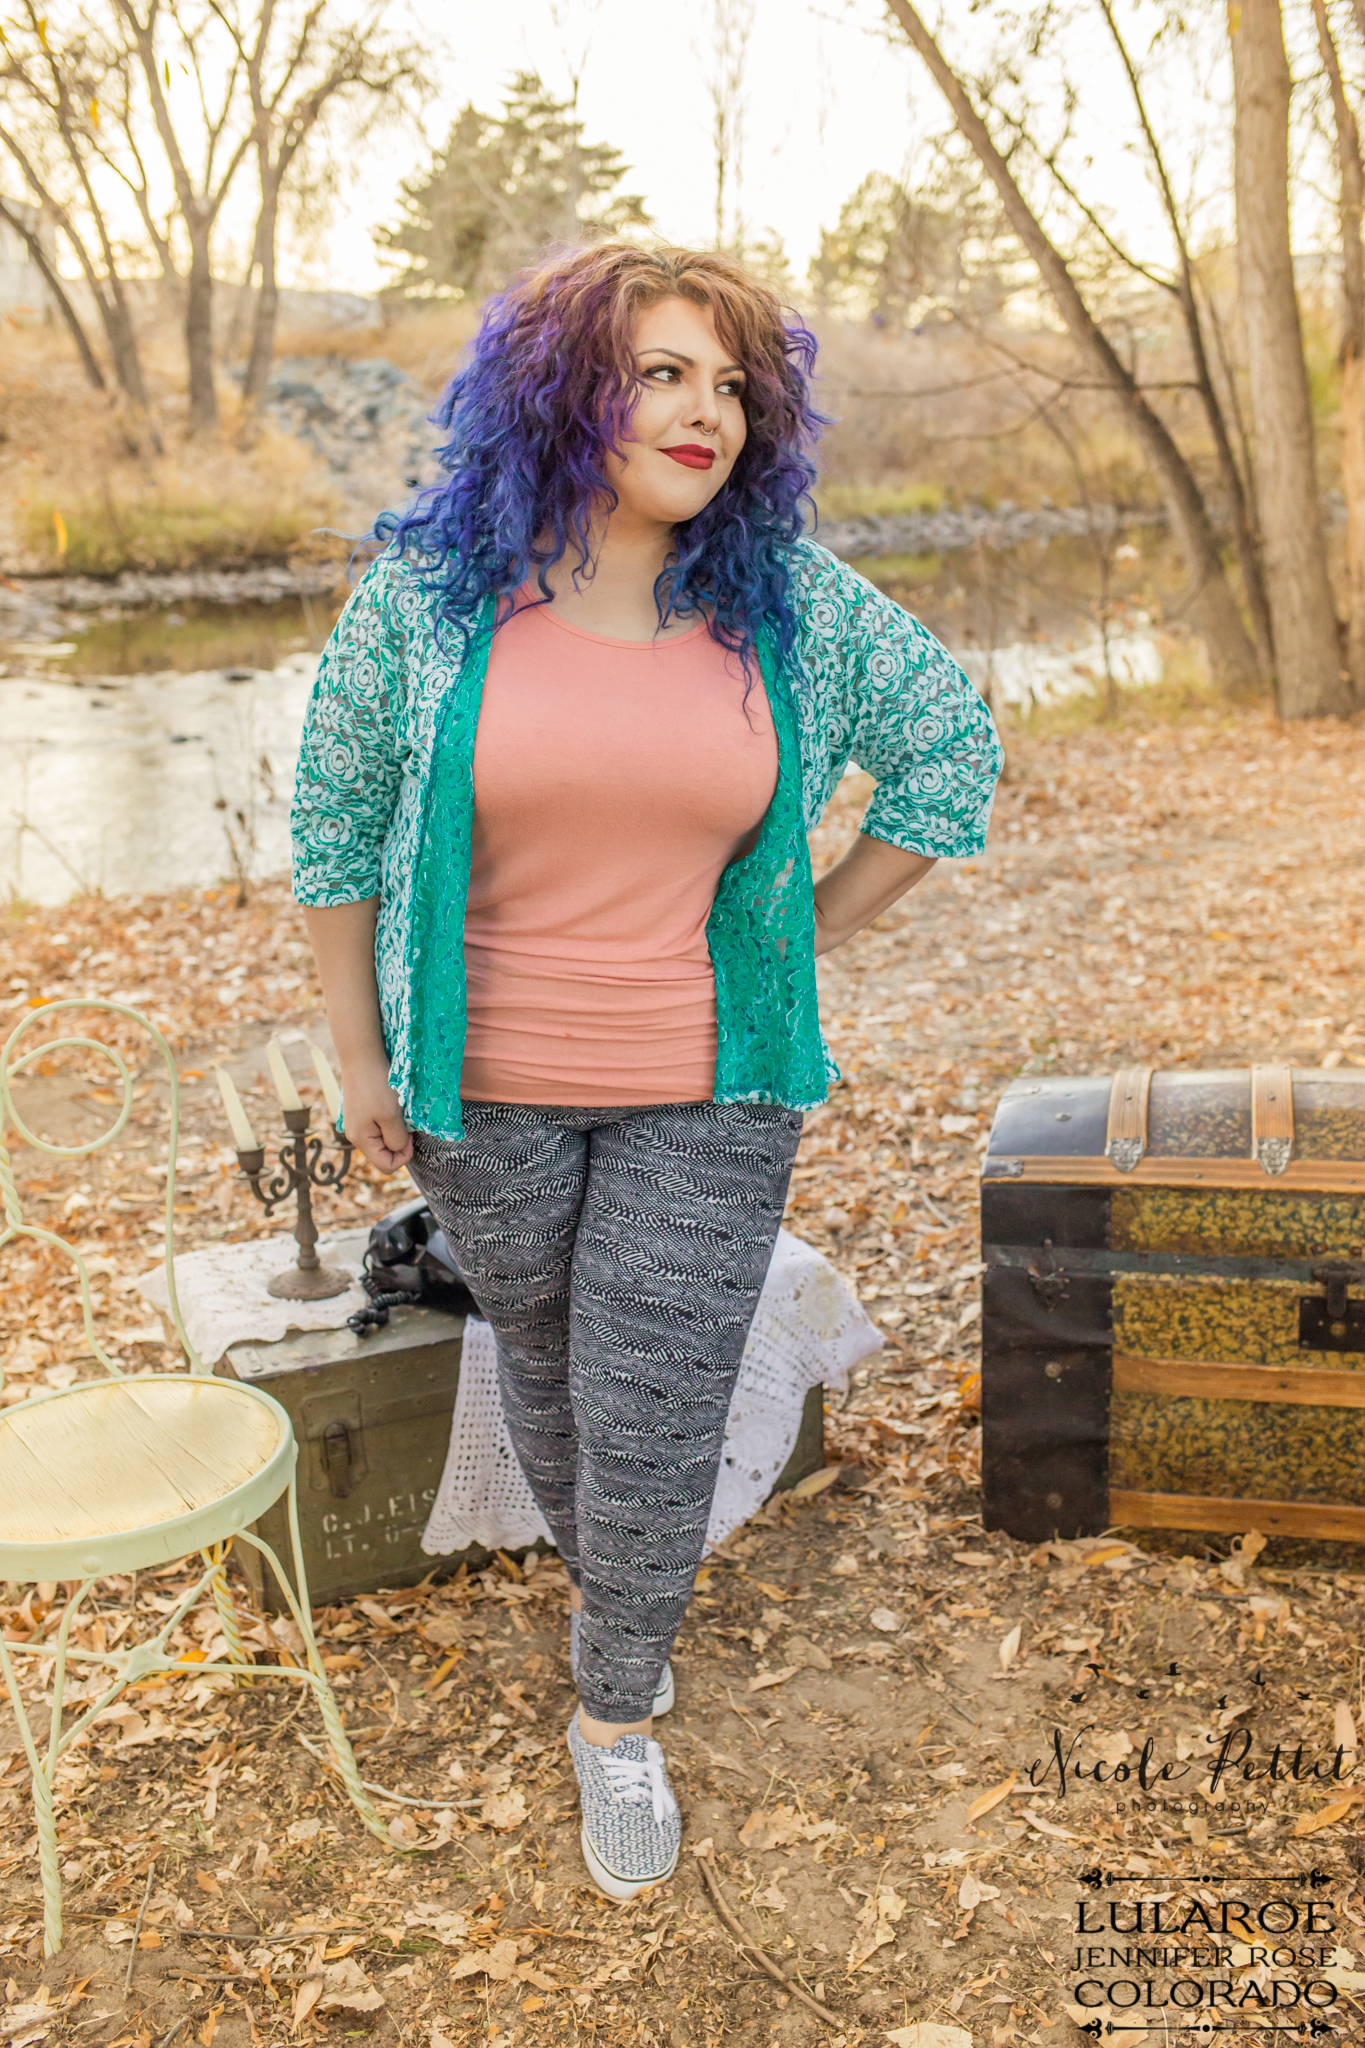 Woman with blue and blue hair modeling leggings from Lularoe with Jennifer from colorado at the Poudre River Trail in Fort Collins, Colorado